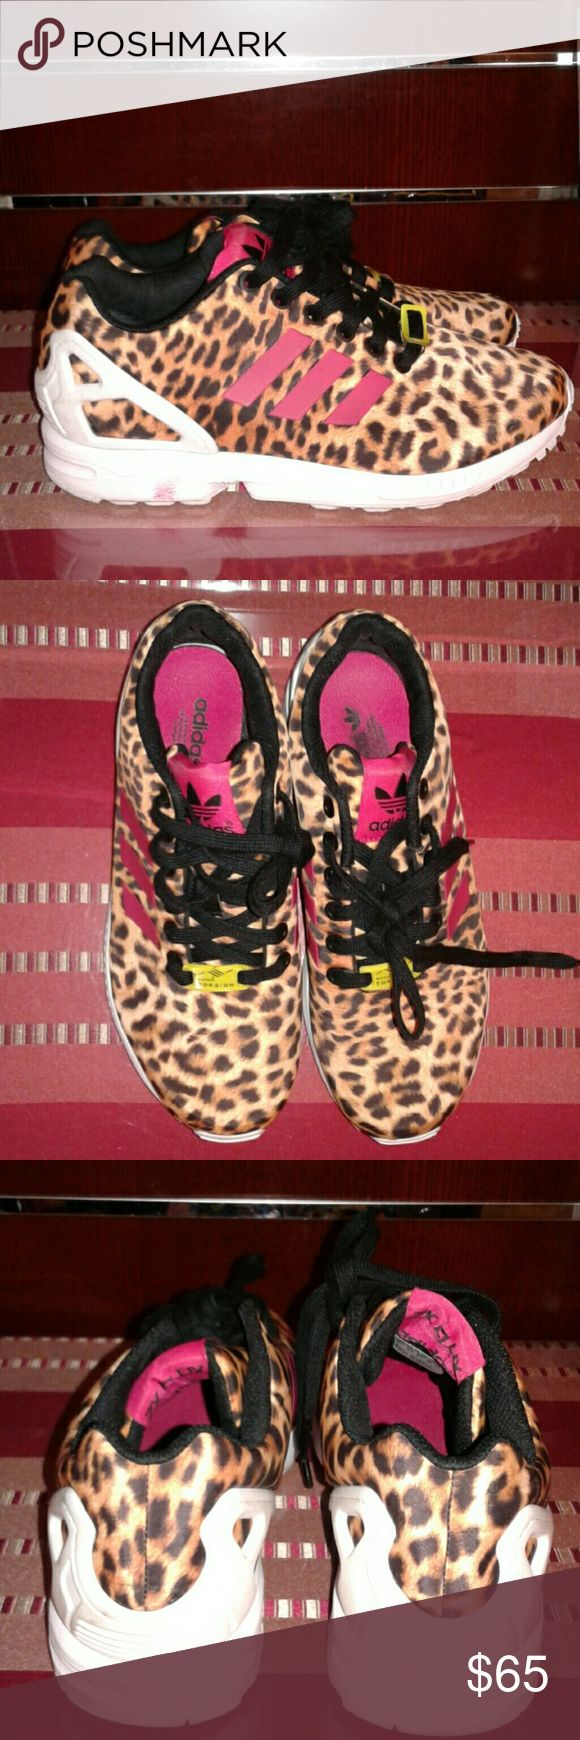 Adidas Torsion Sneakers Adidas Torsion Sneakers with ZX Flux in cheetah print with pink accent. adidas Shoes Sneakers